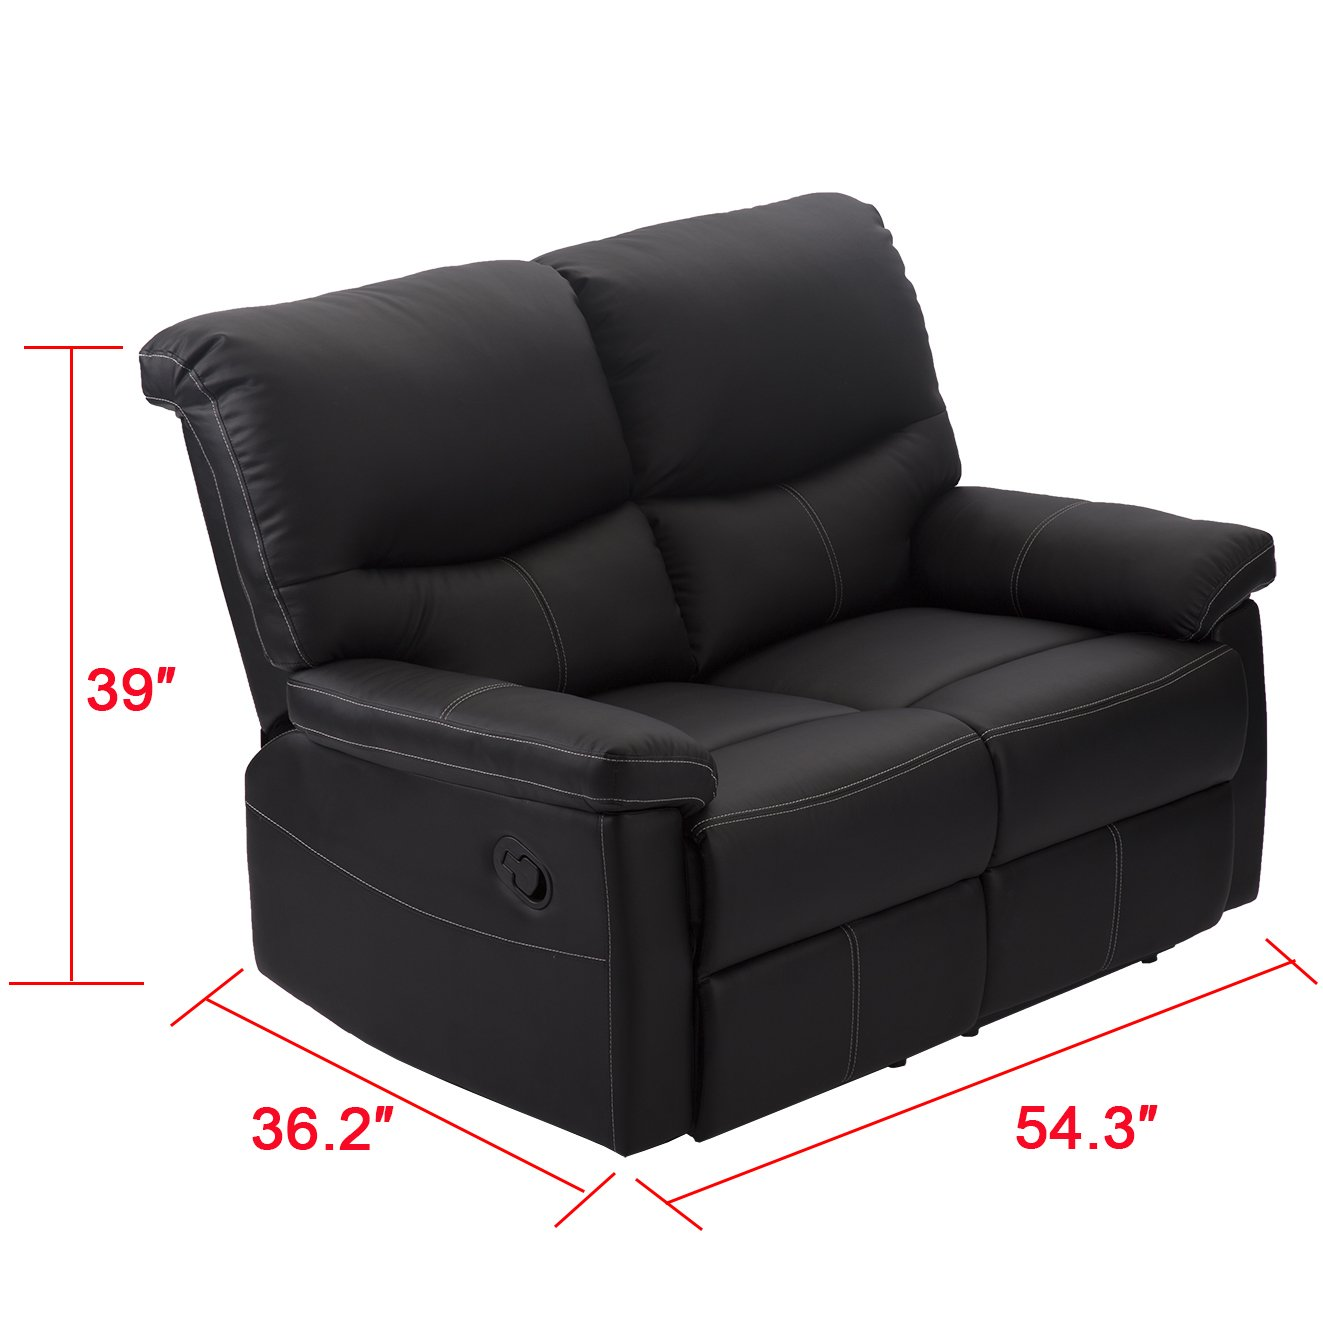 Amazon.com: Sofá de 2 Set Loveseat chaise sofá sillón ...